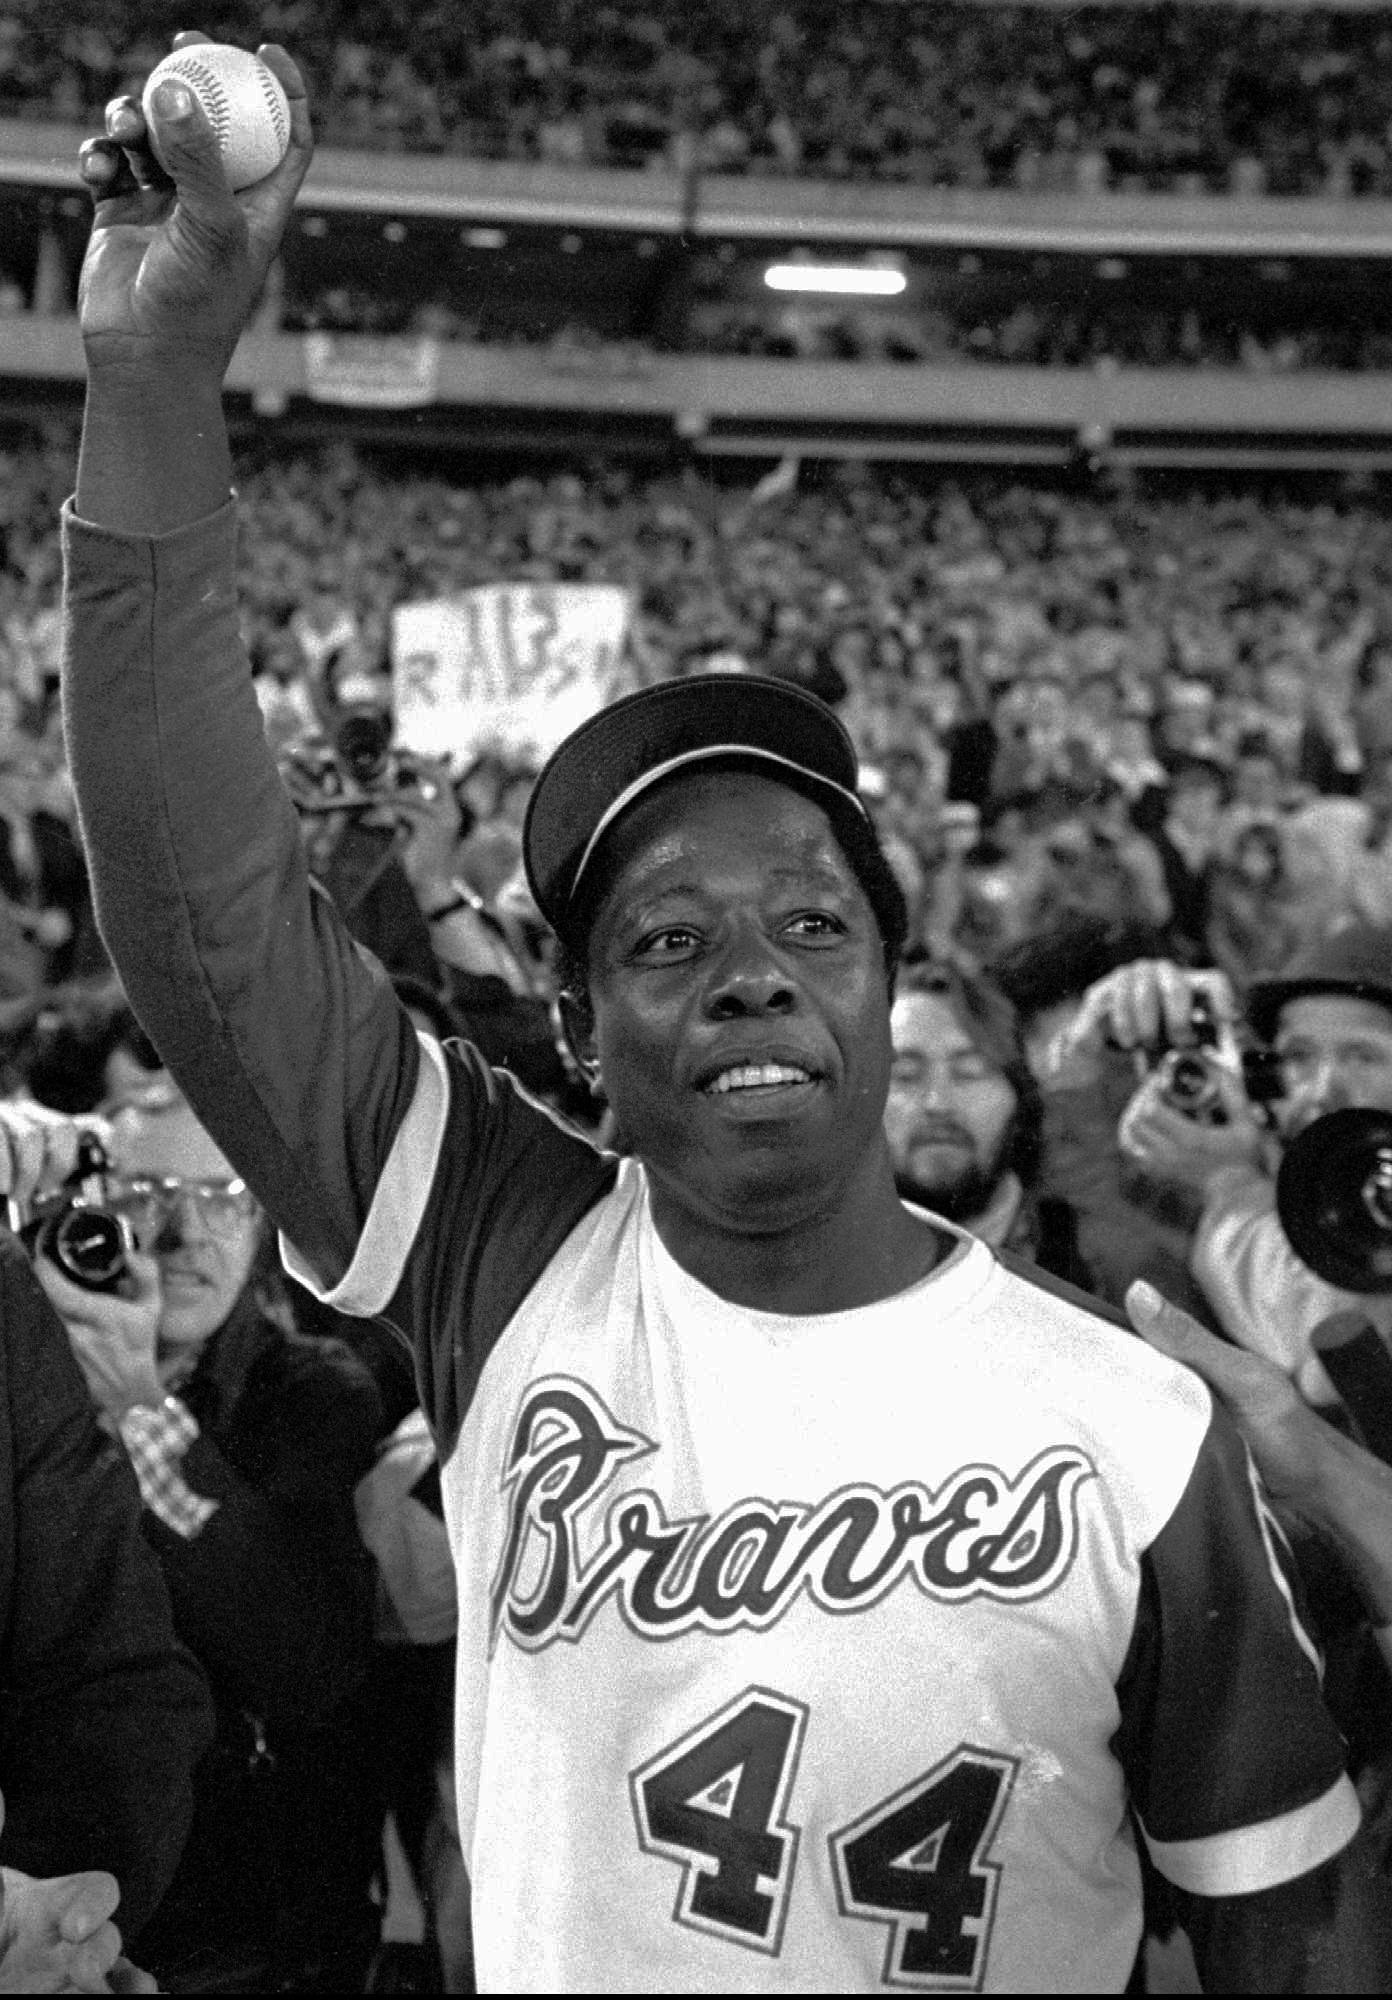 Hank Aaron's 715th